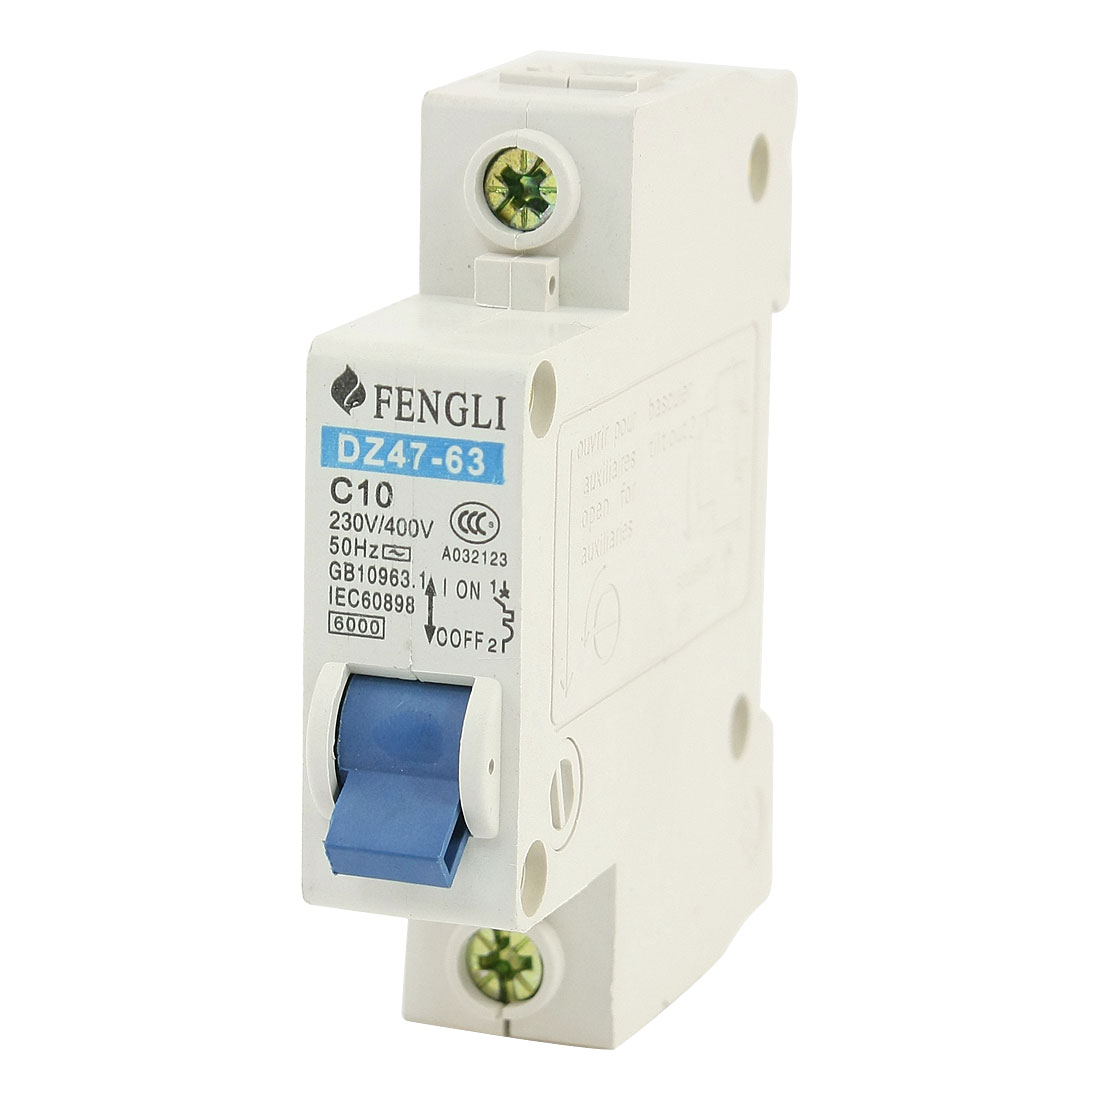 35mm DIN Rail Mount Single Pole Circuit Breaker 230V/400VAC 10A 6000A